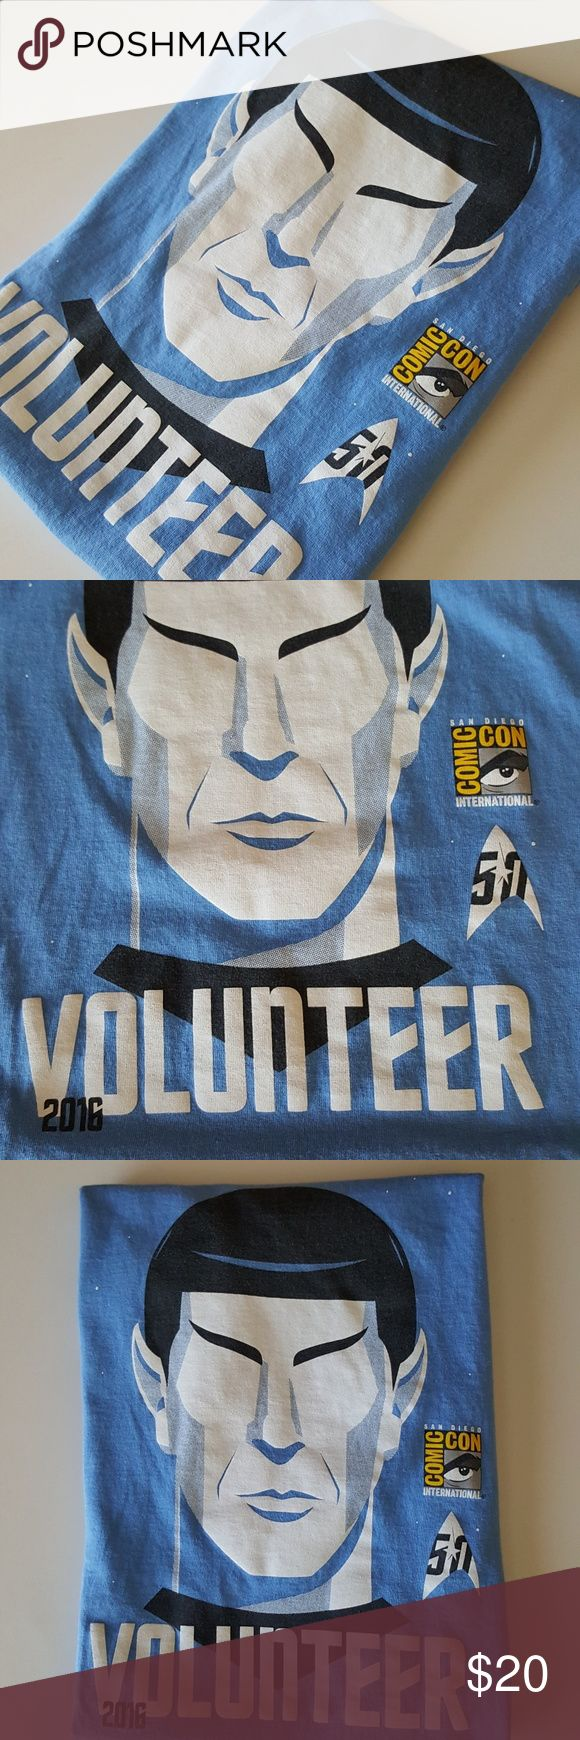 2016 San Diego Comic Con Spock Star Trek Shirt Good to very good pre-owned condition. 2016 SDCC San Diego Comic Con Blue Spock Star Trek Volunteer Shirt. Exckusive during 59th Star Trek Anniversary Outdoor Movie Premier in San Diego. Size: S/ P/CH. Hanes Tops